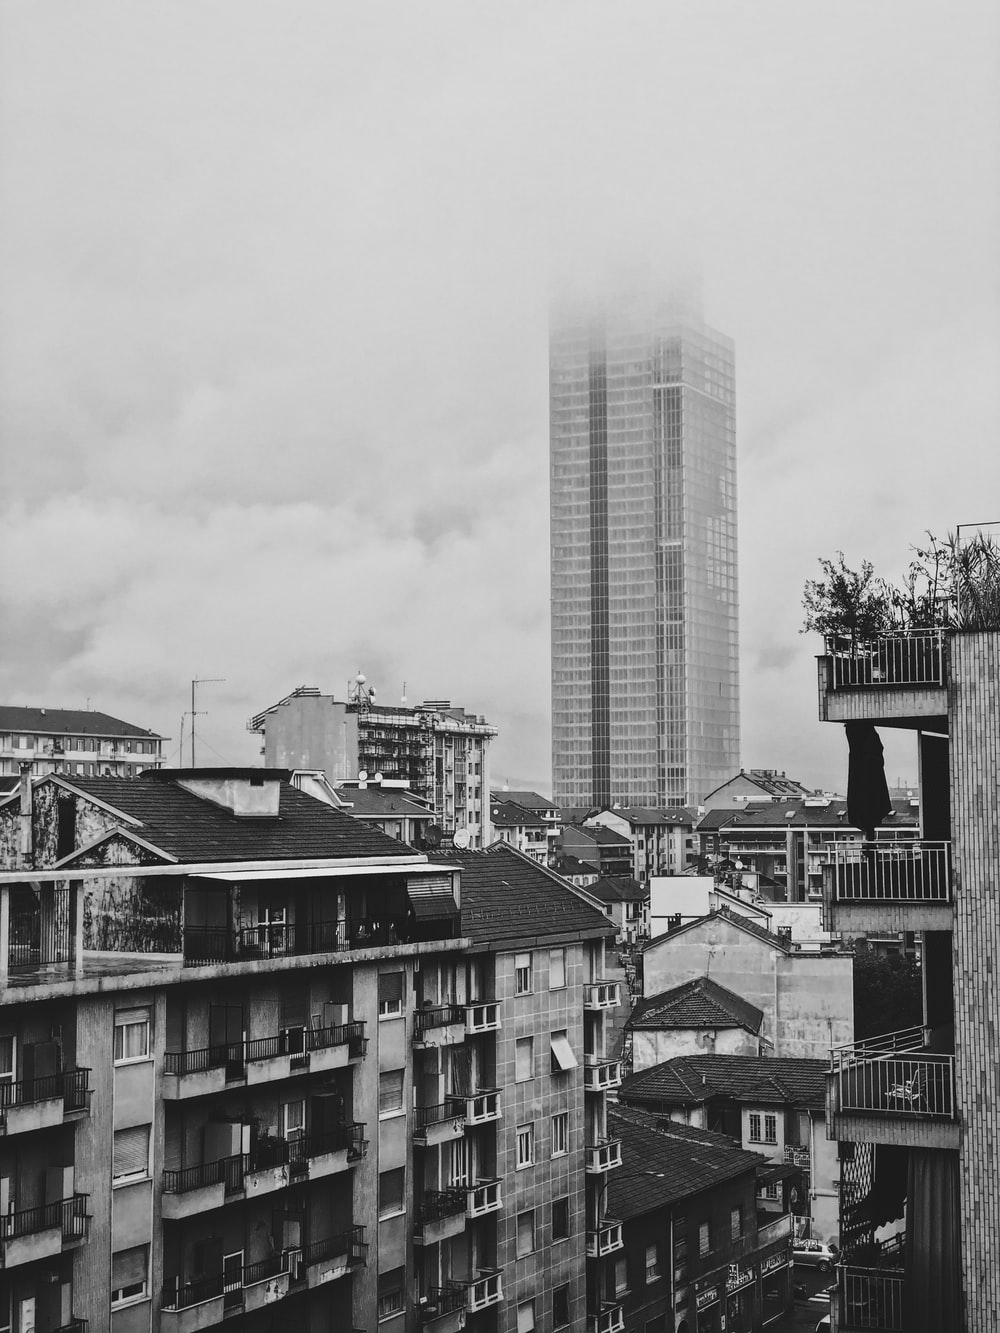 grayscale photography of city with high-rise buildings and houses